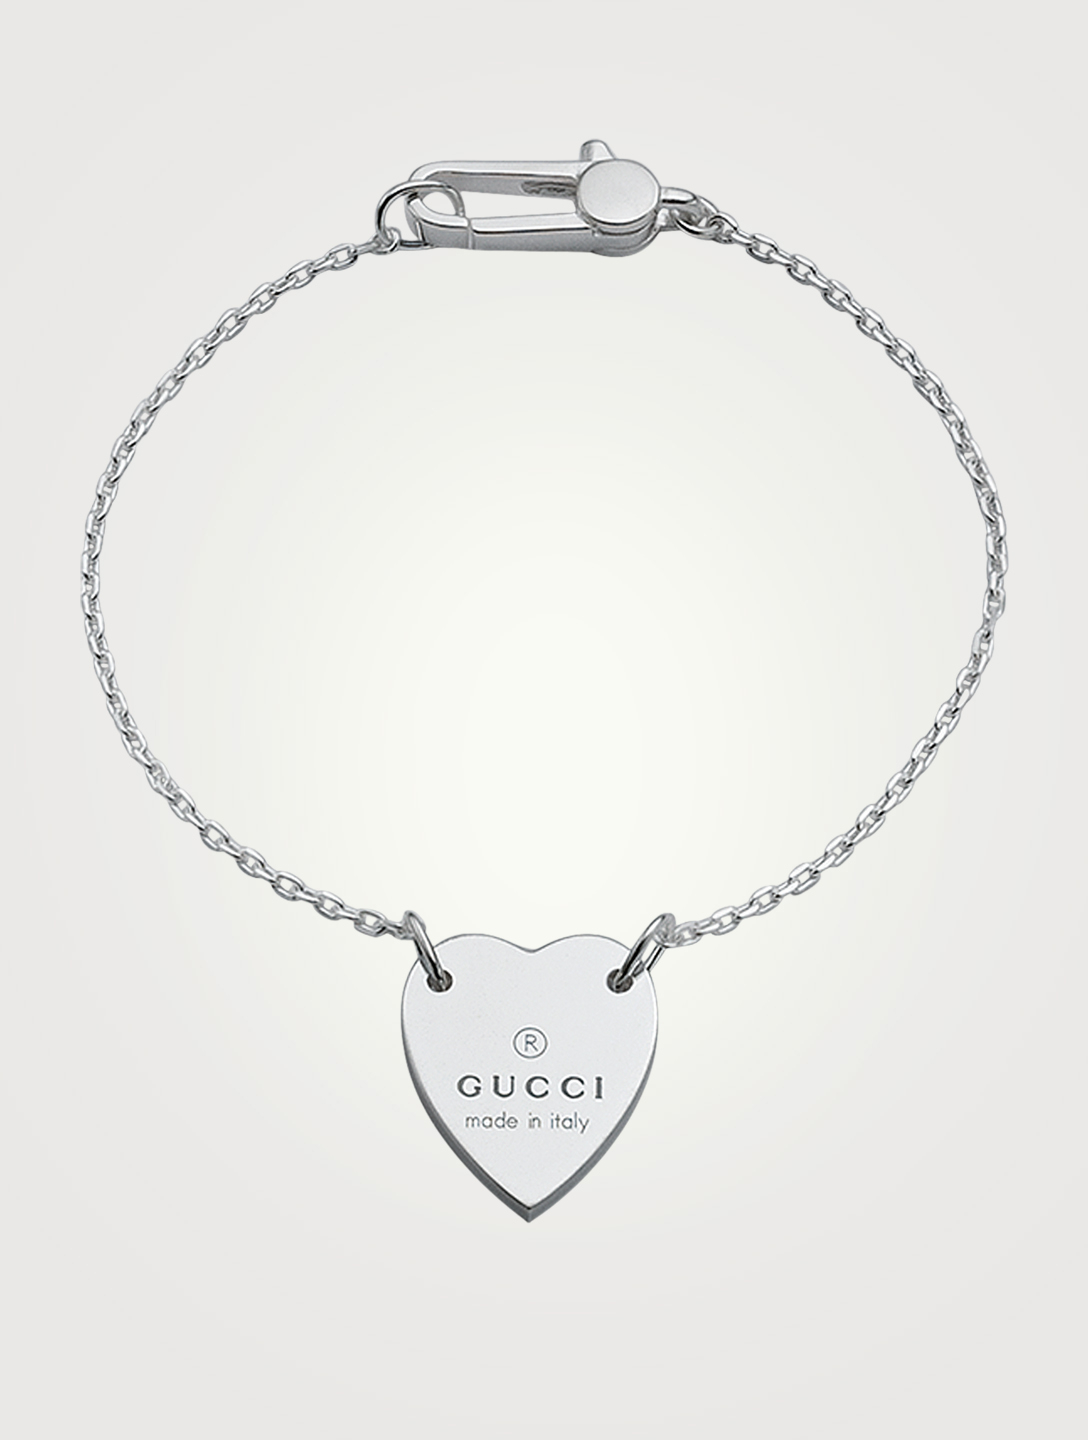 GUCCI Sterling Silver Heart Bracelet Women's Metallic